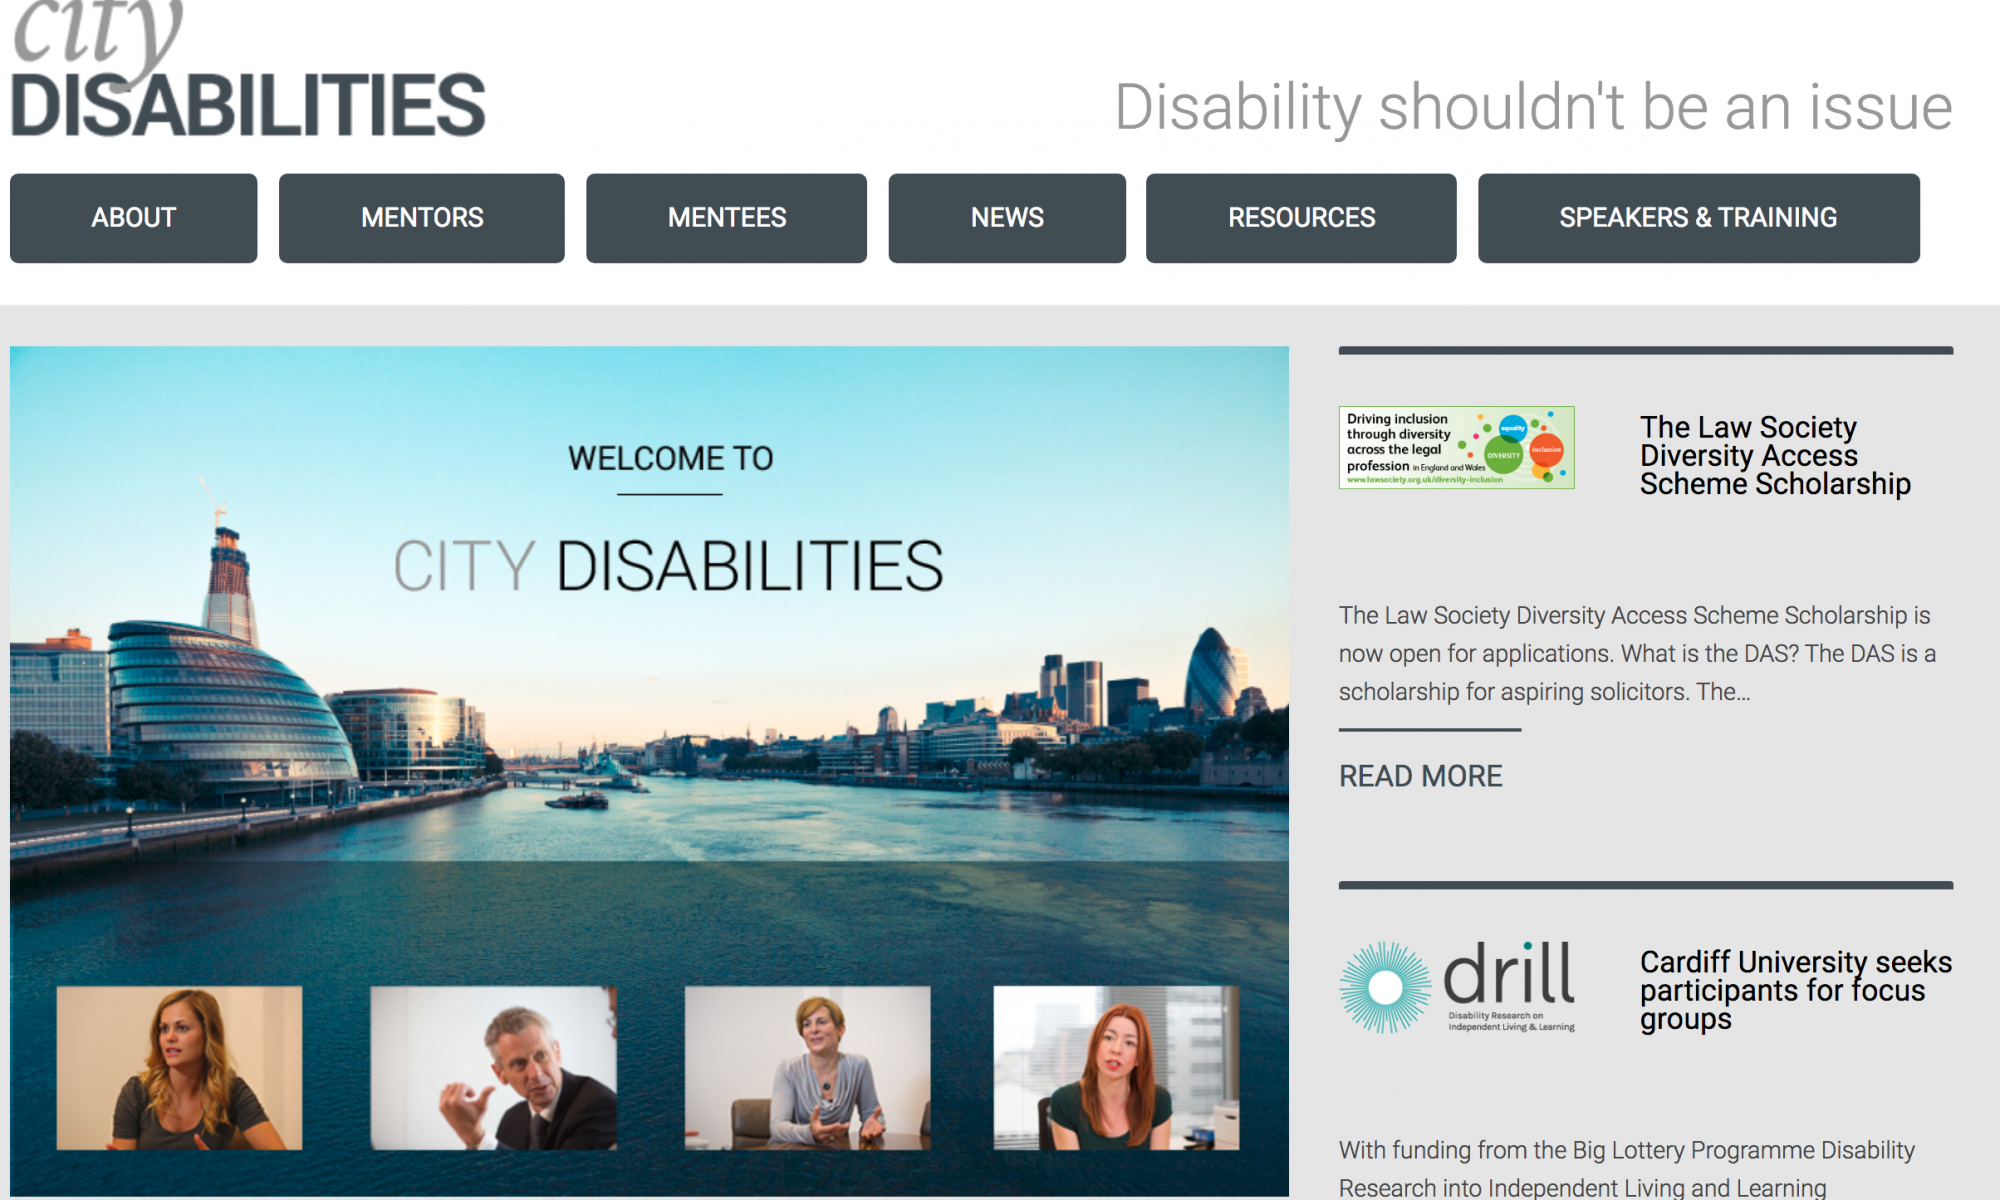 A screenshot of the City Disabilities website homepage